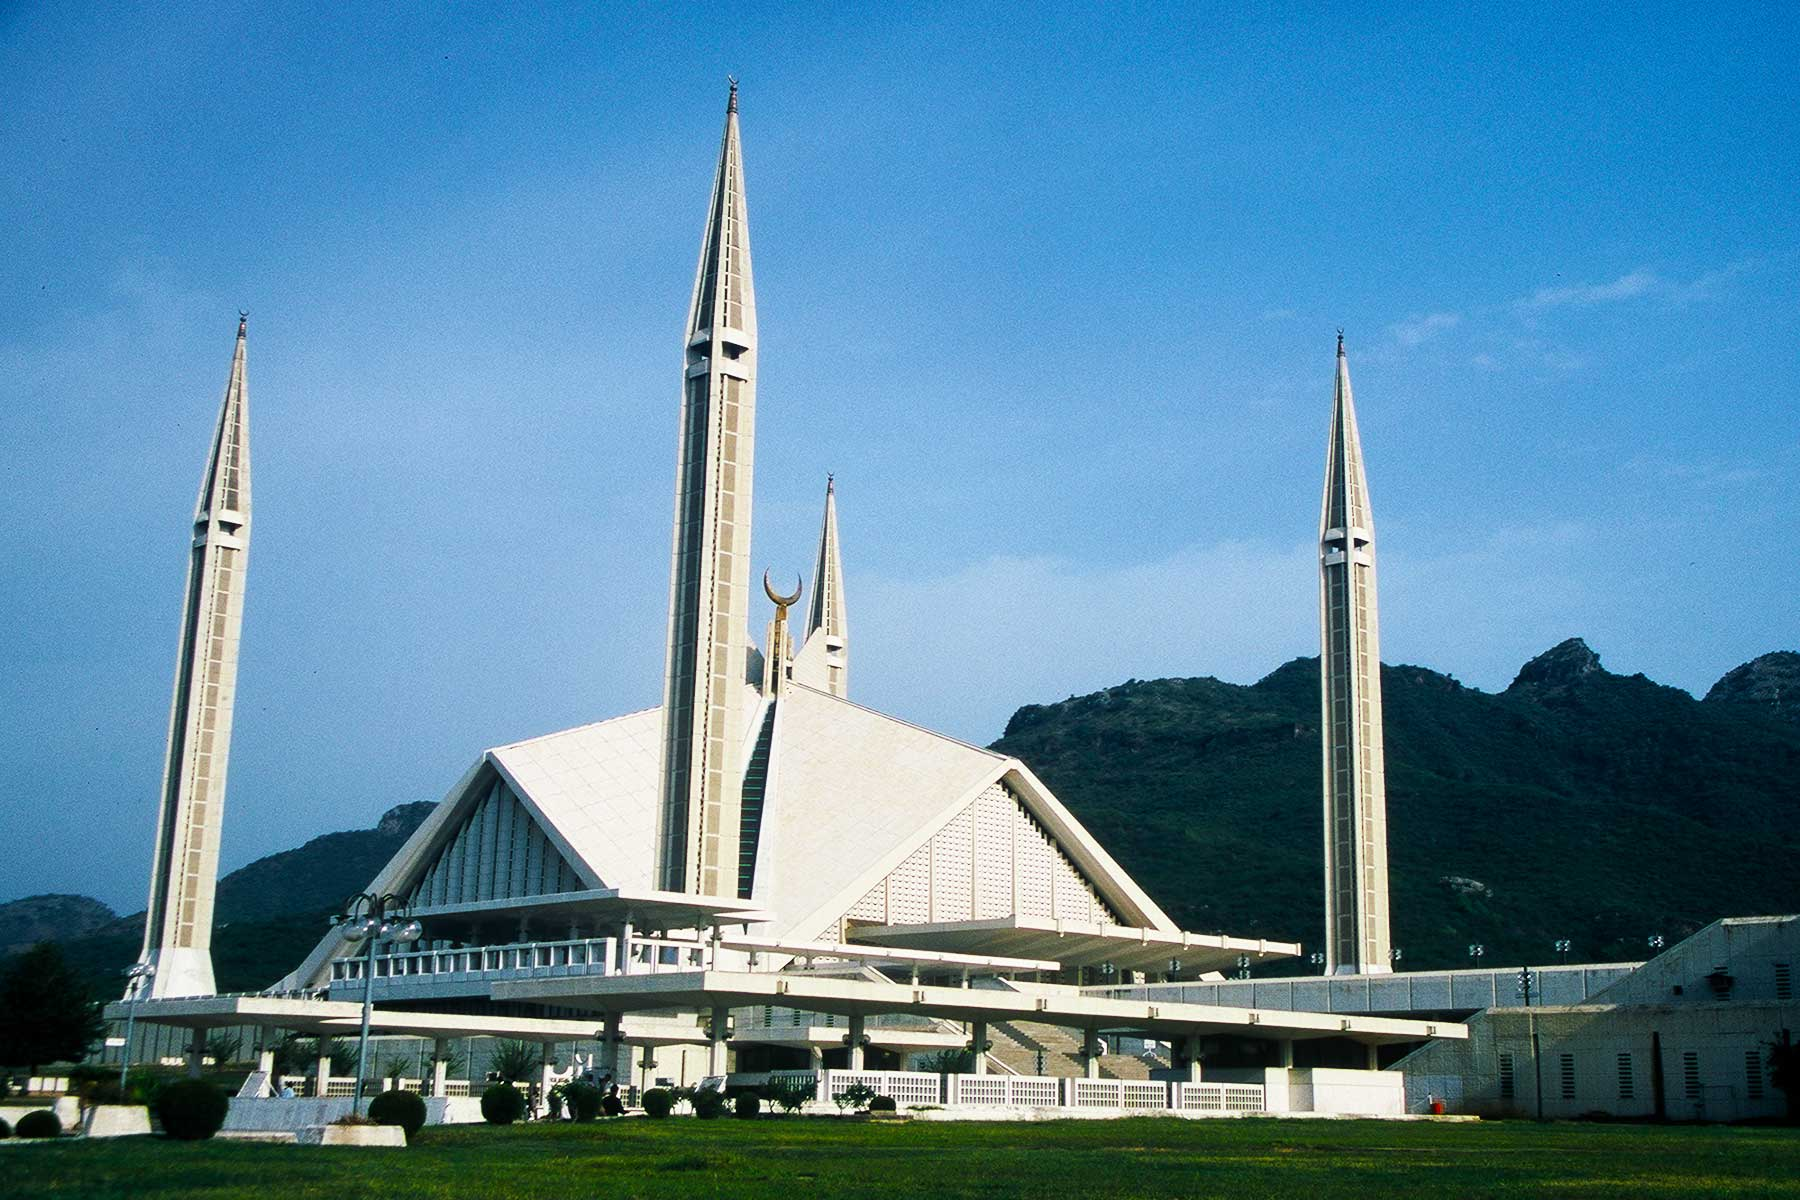 Faisal Mosque Islamabad - Steven A Martin PhD -  Islam in Pakistan - Pakistan Photo Journal - Study Abroad